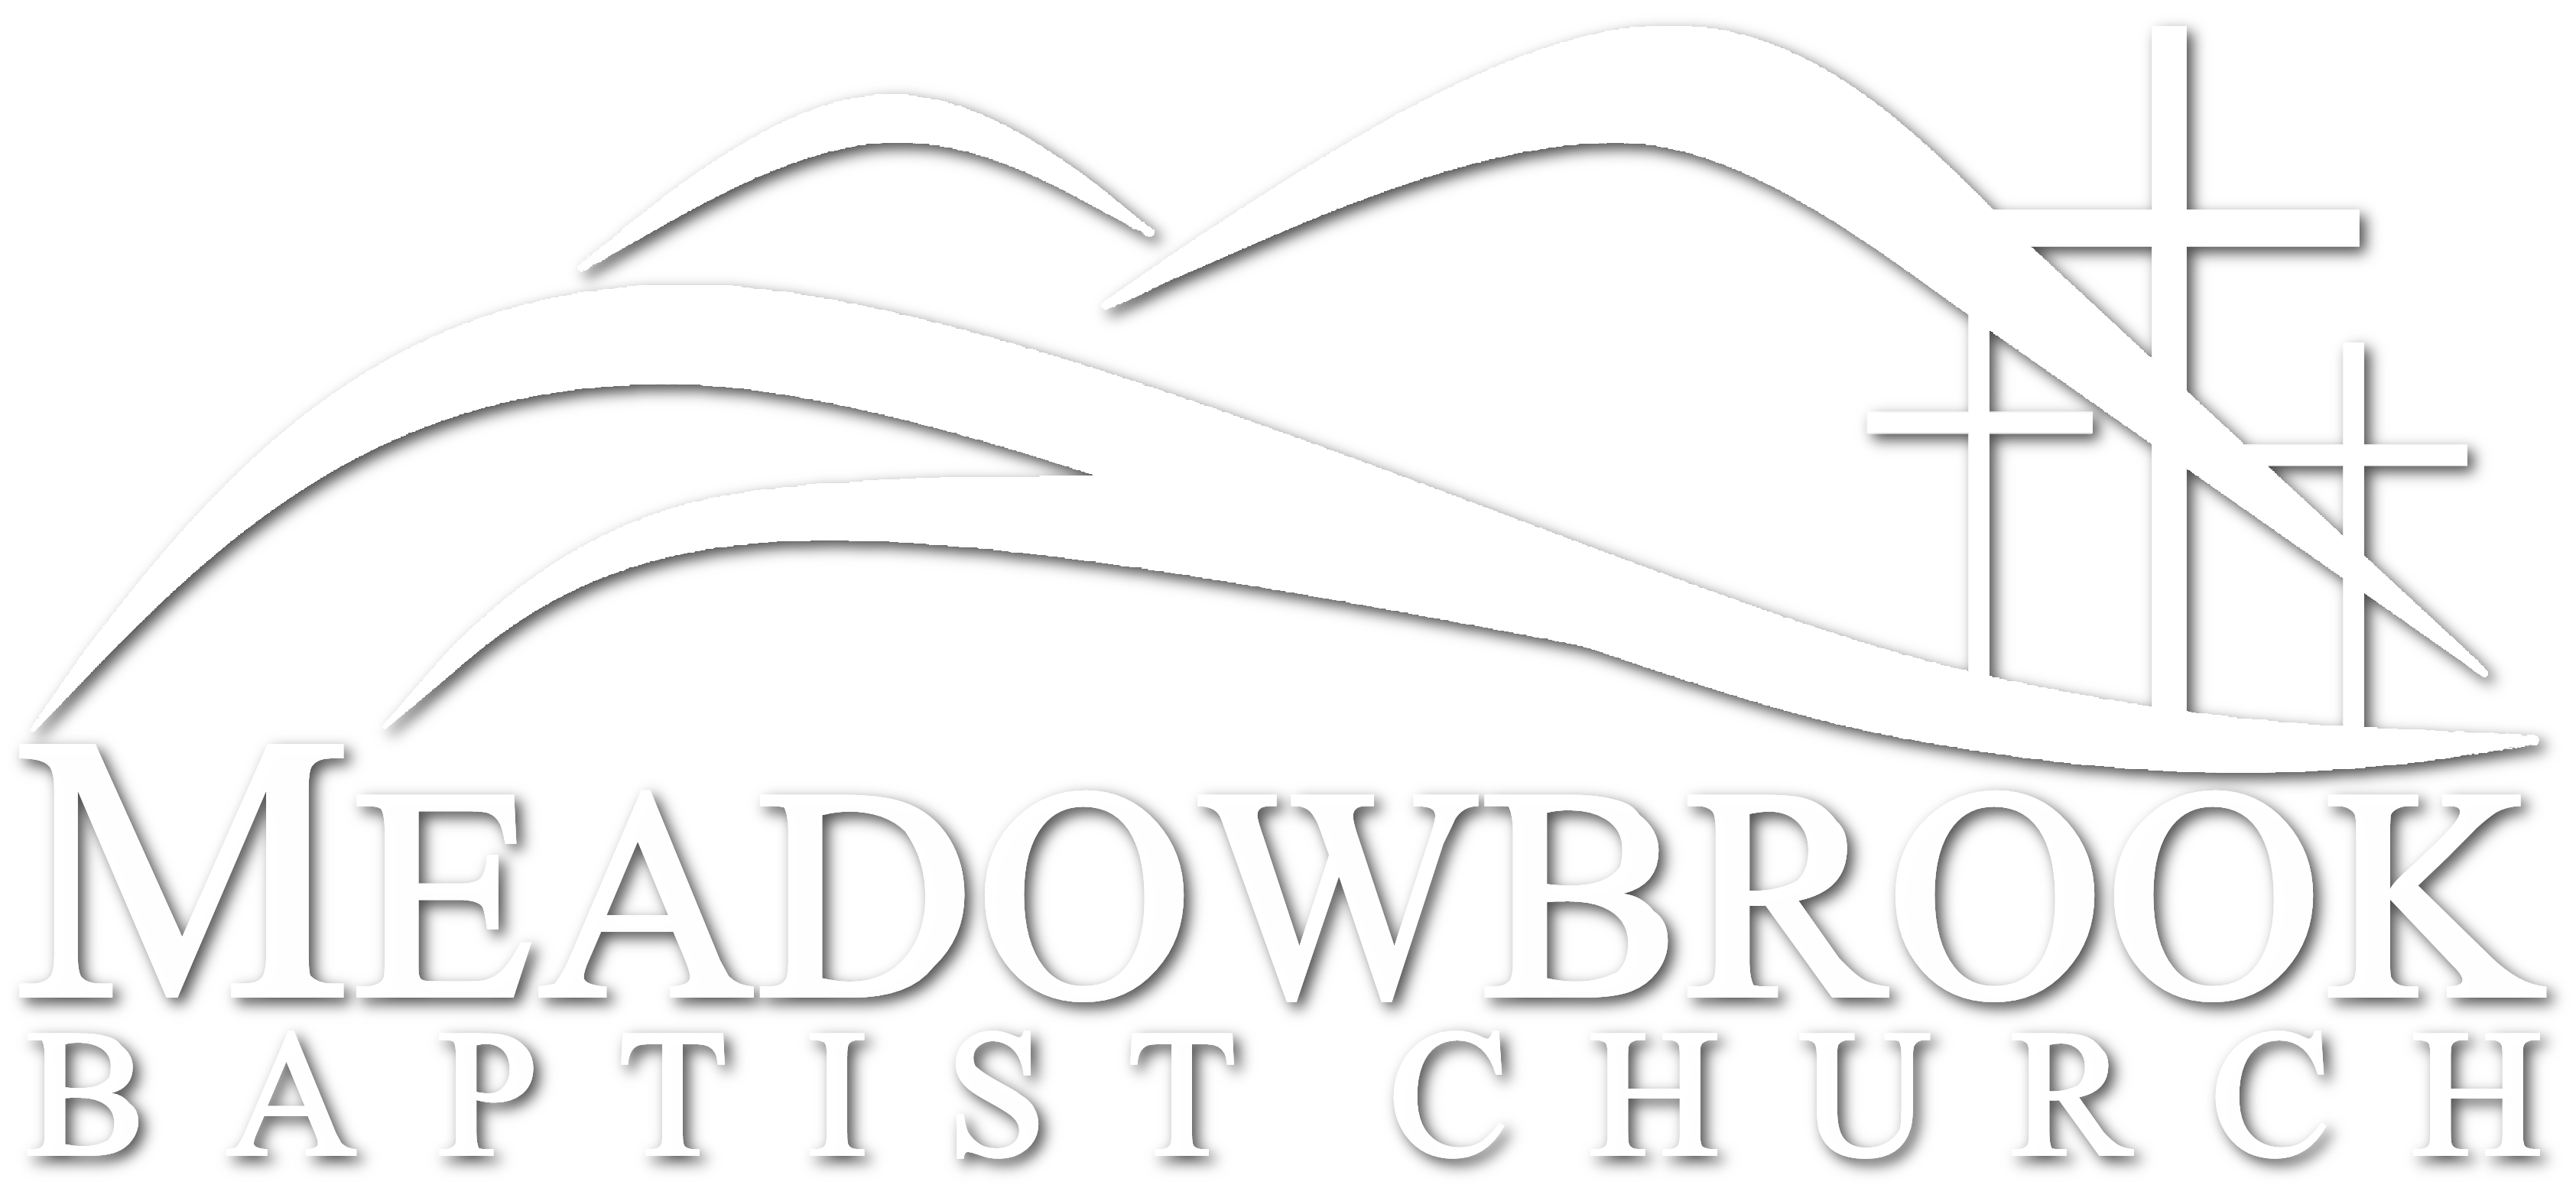 Meadowbrook Baptist Church